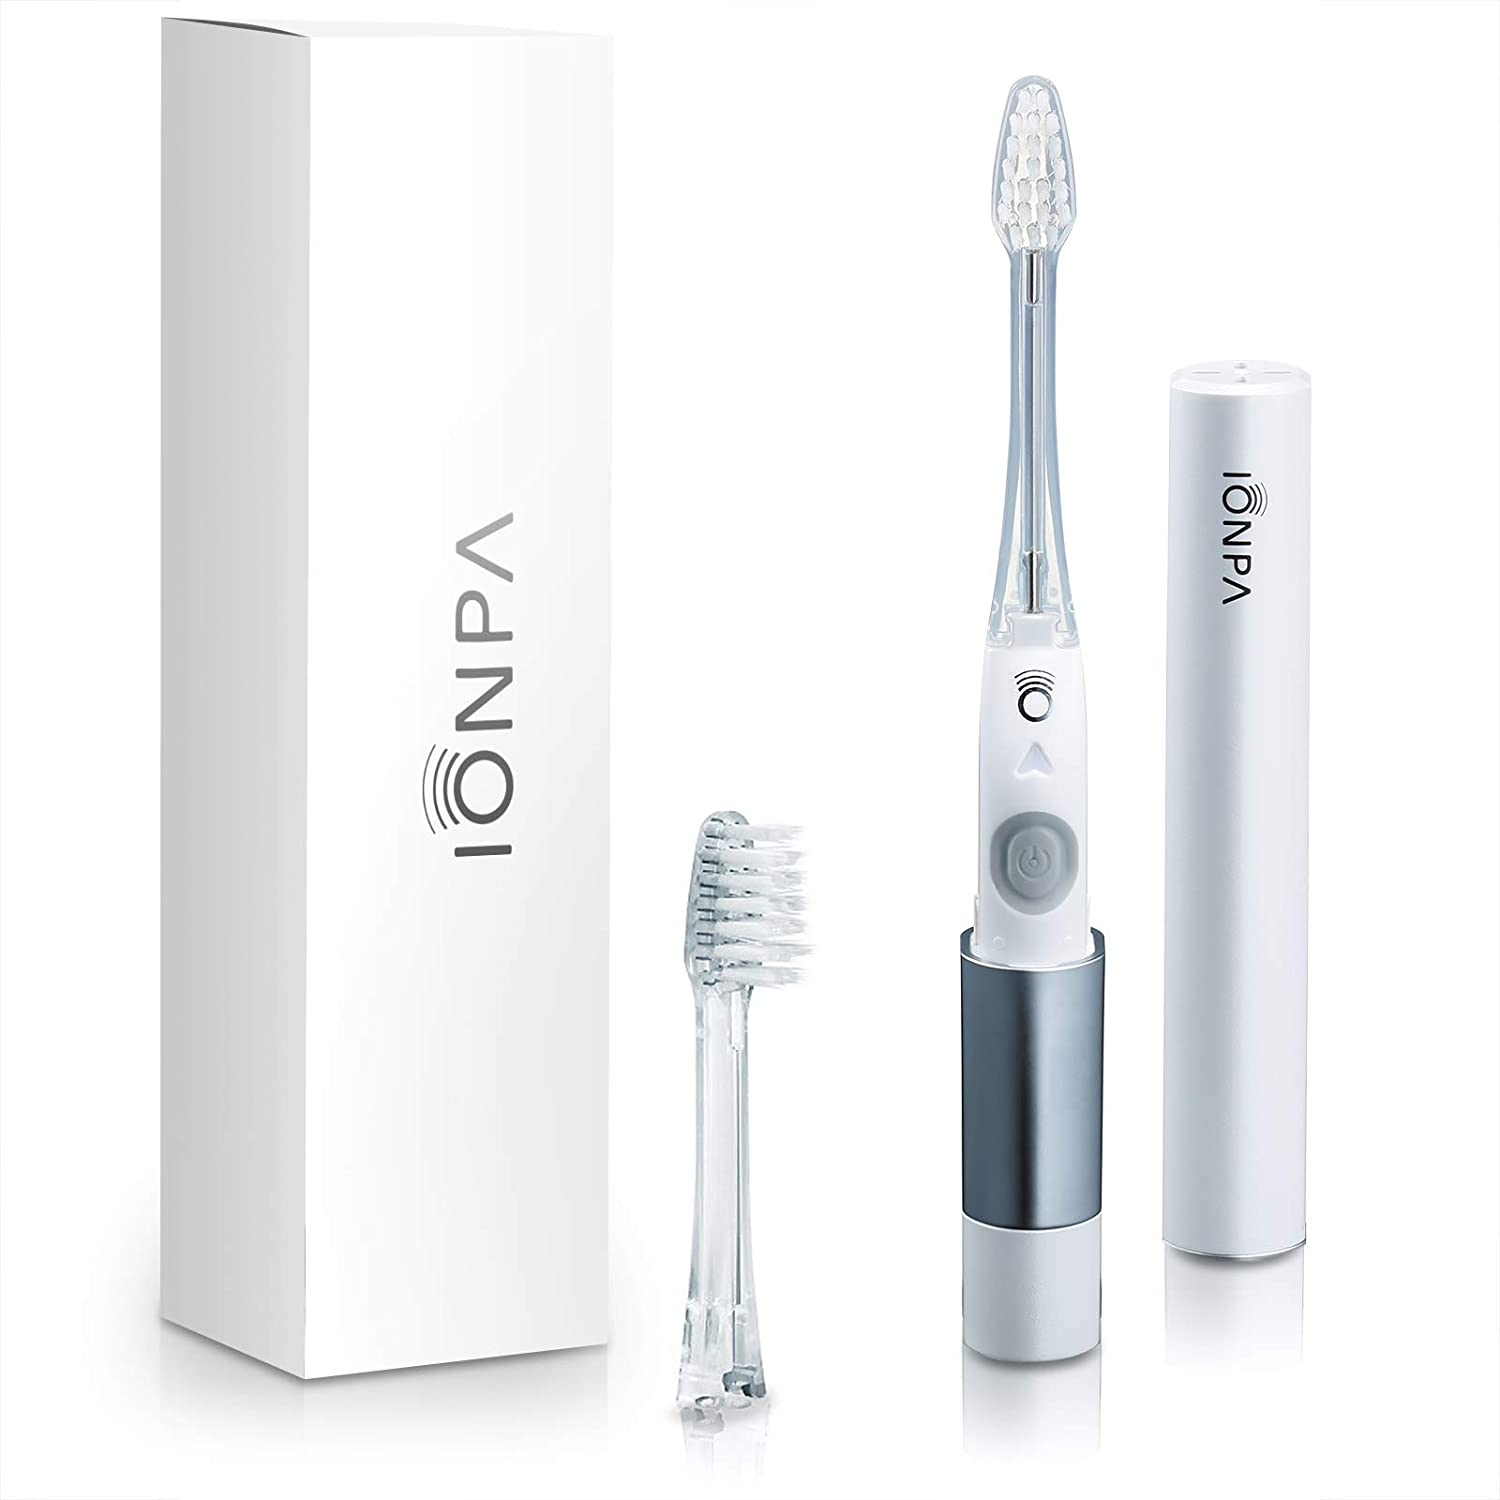 IONPA DM White Compact ION Power Electric Toothbrush with Travel Ready Cap, Brushing Timer, 2 Modes, 2 Soft Extended Filament Replacement Brush Heads, Made in Japan by IONIC KISS You, DM-011PW